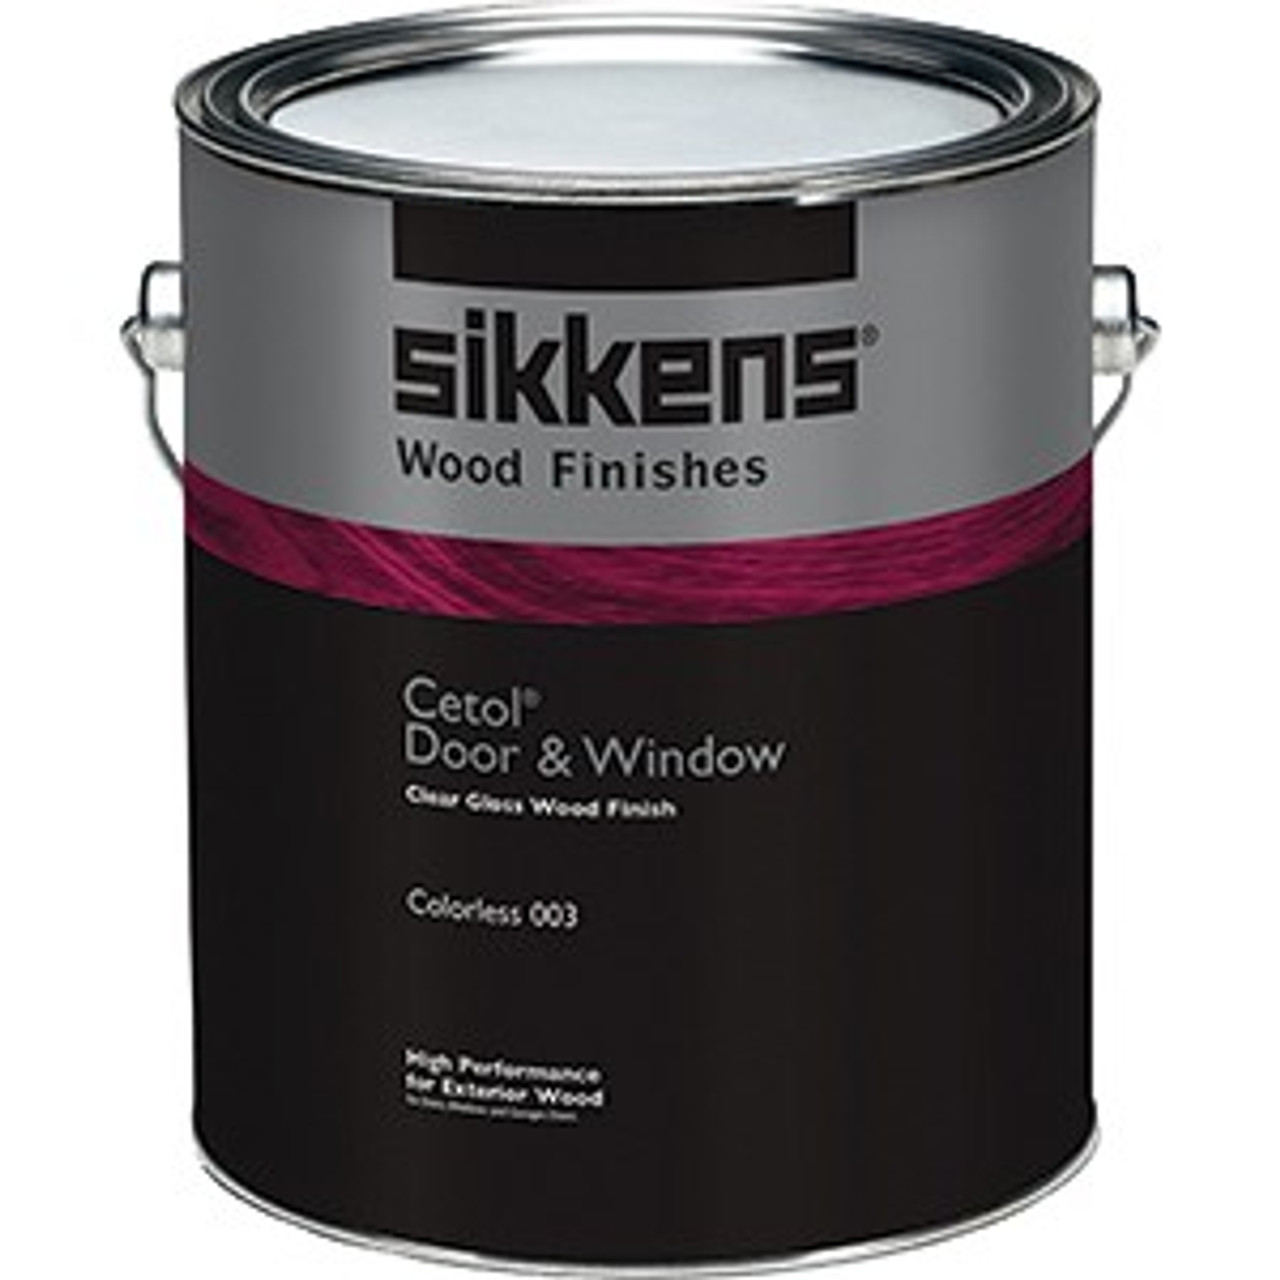 Sikkens SIK48003 1G Cetol D&W Satin Colorless 003